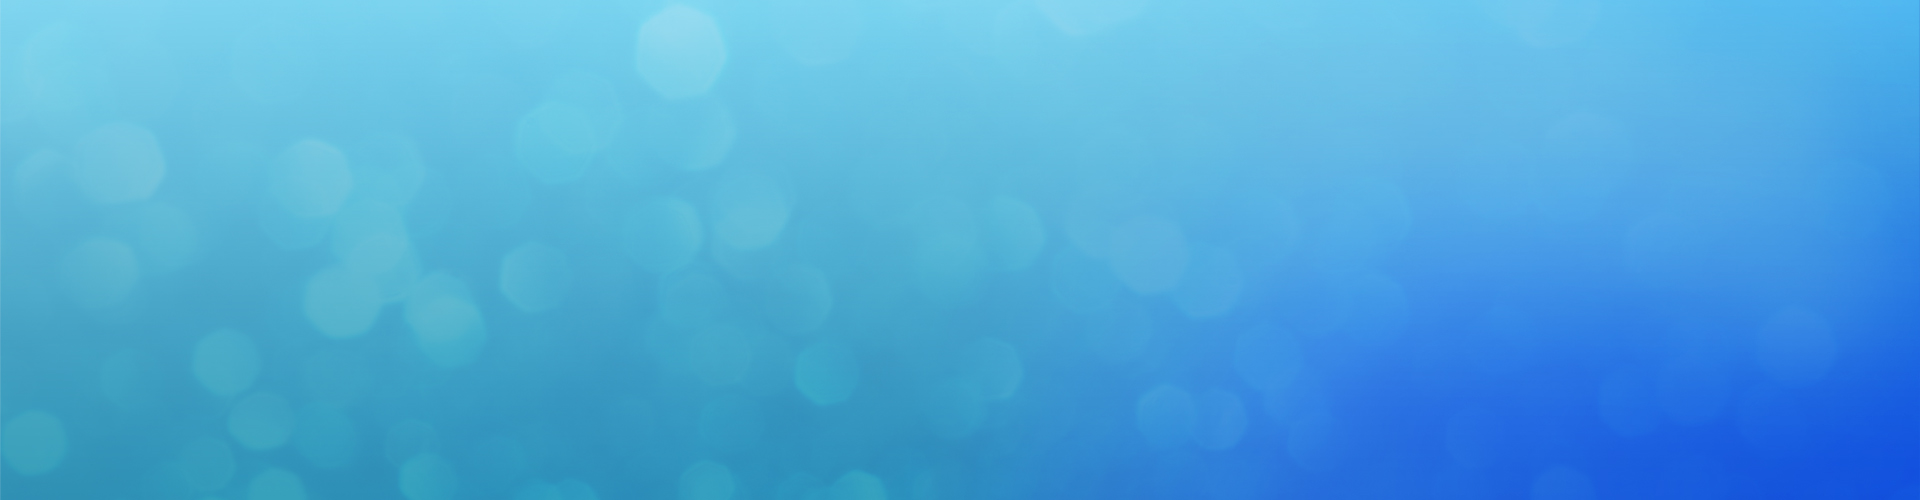 product_banner_1920px_144dpi